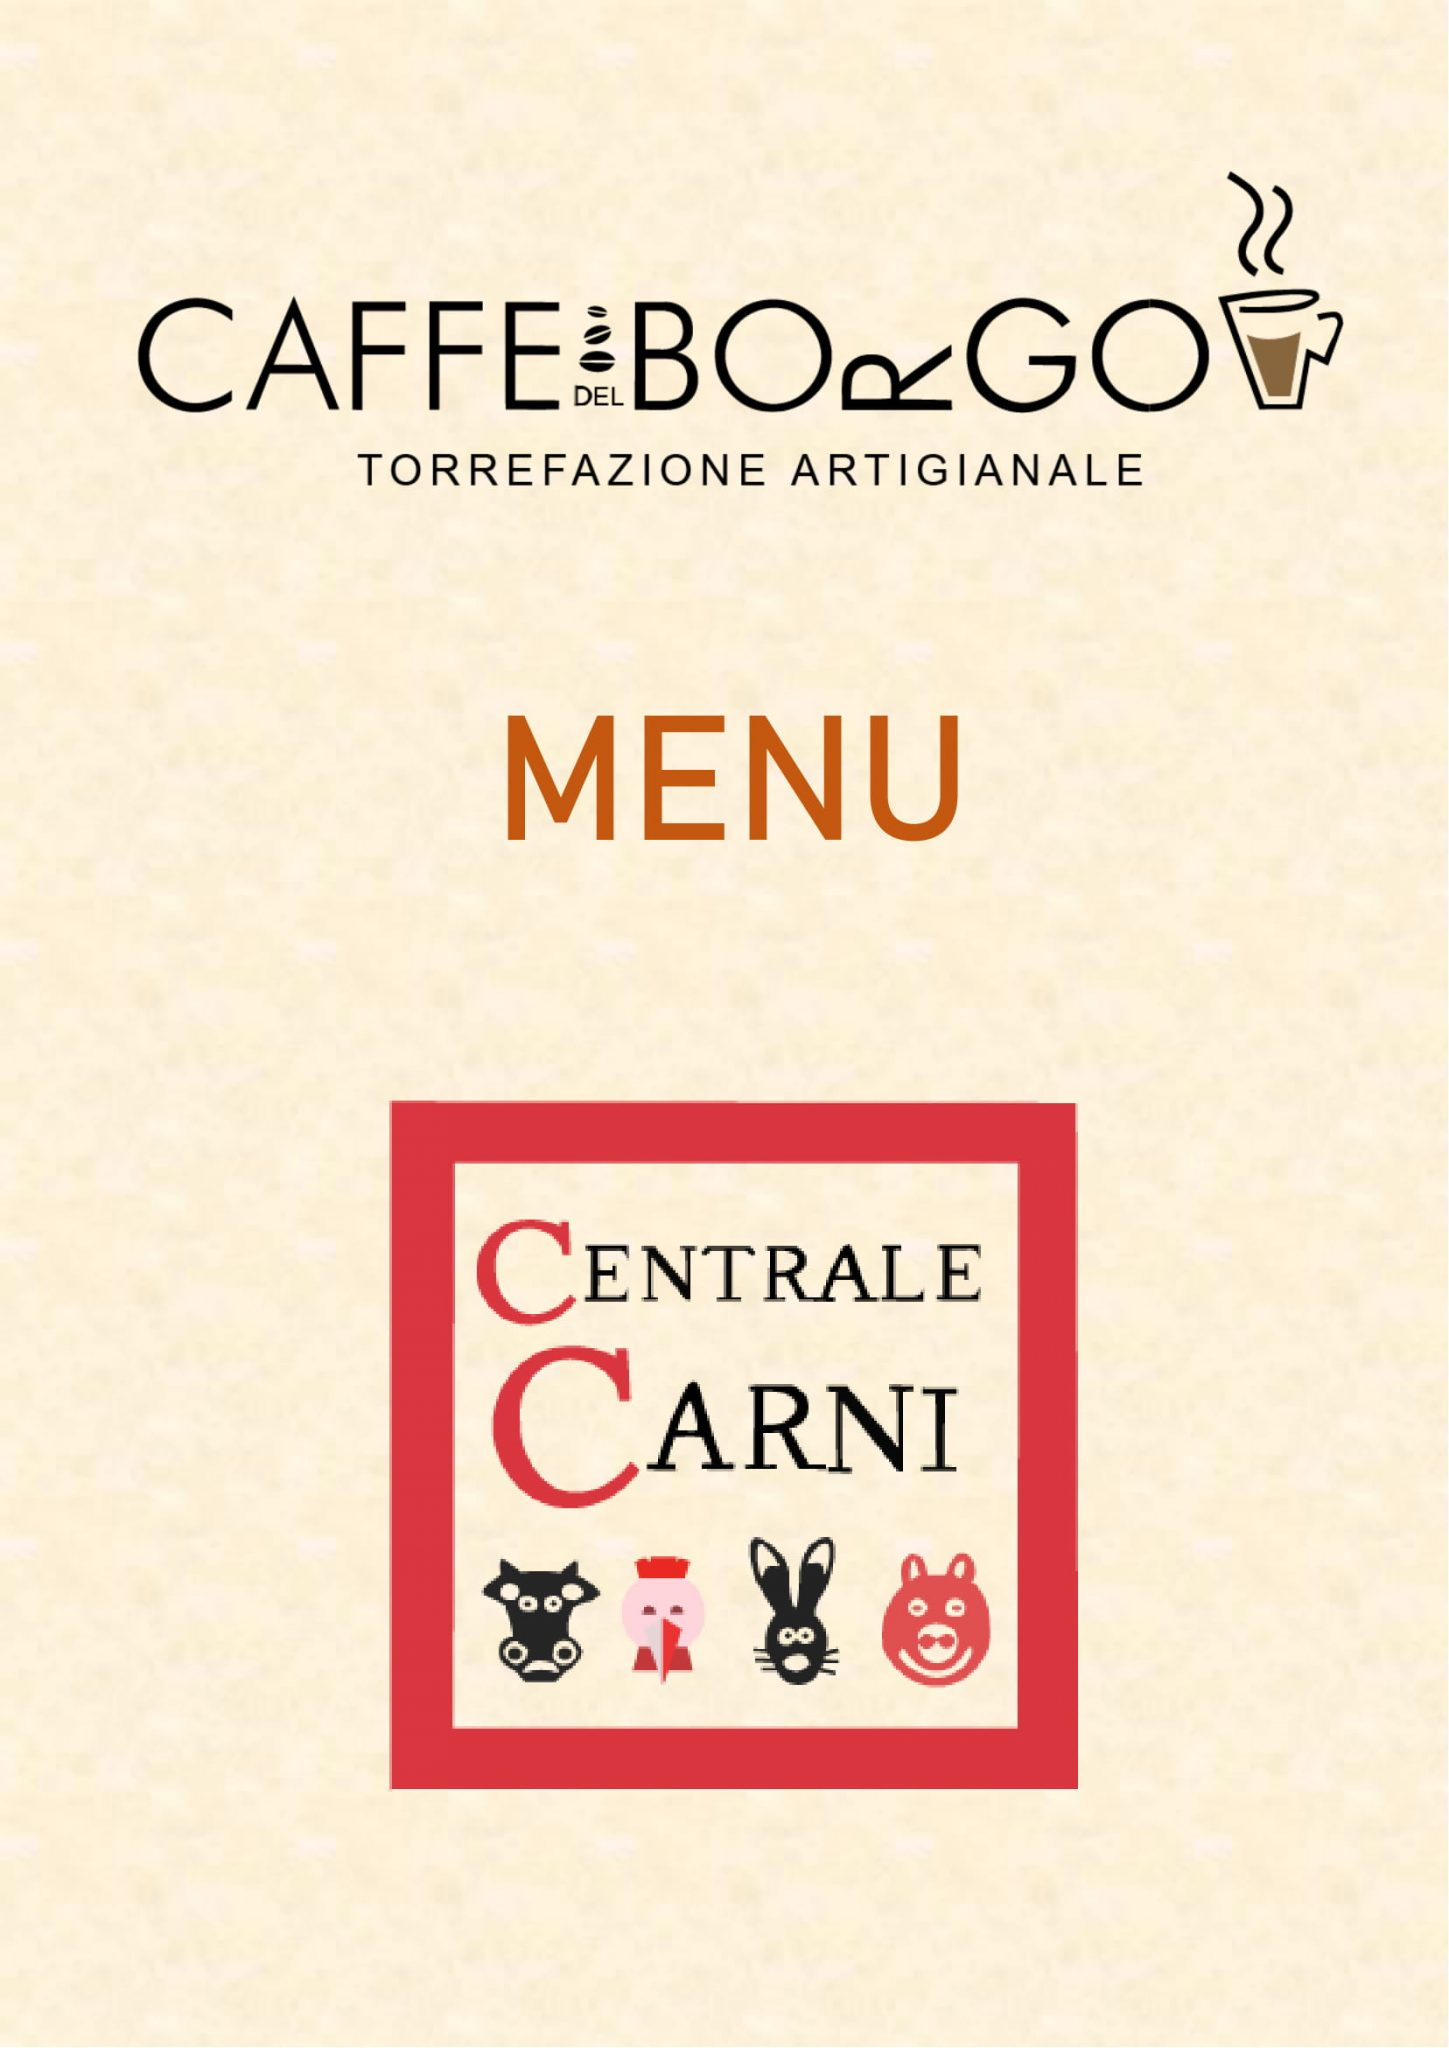 2020.05.27_Caffe_Borgo_Menu_(Draft_V3)-1